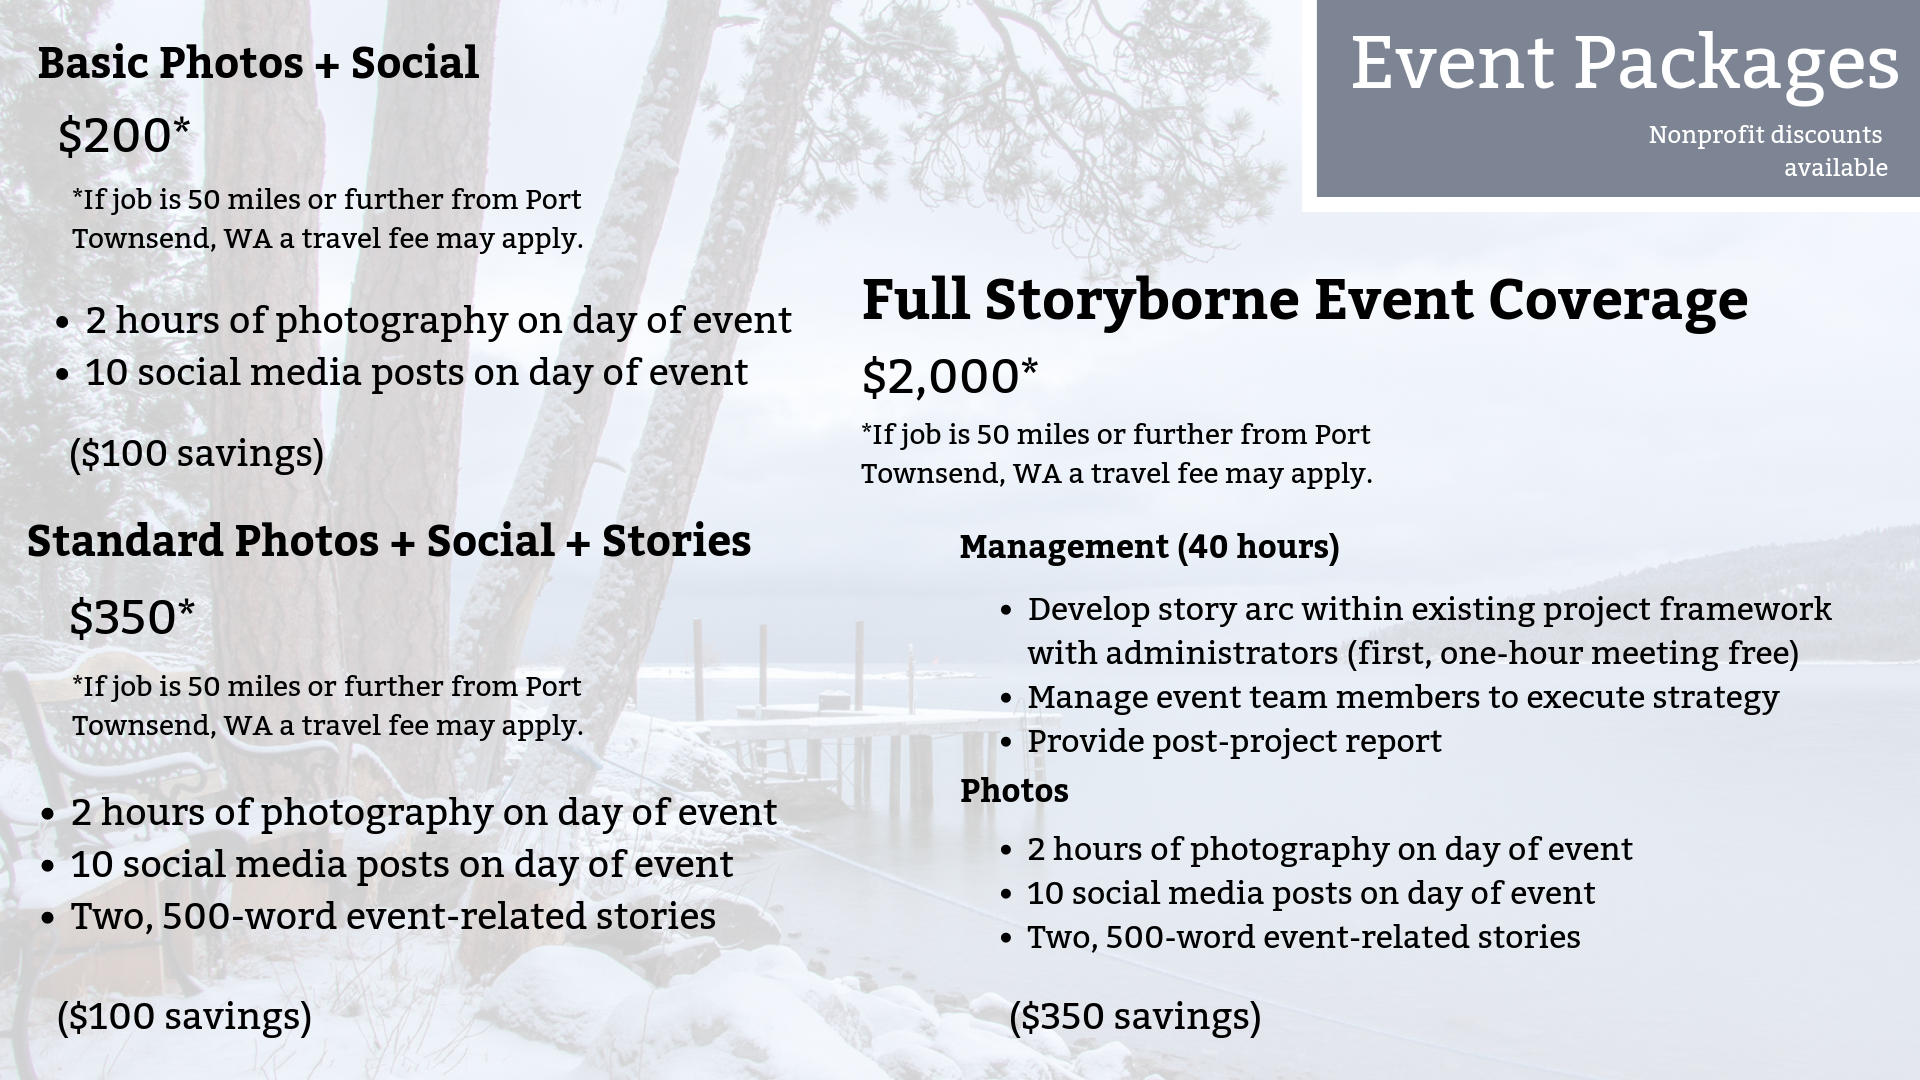 Bonnie-Obremski-Storyborne-Marketing-And-Project-Management-Services-Event-Packages.PNG